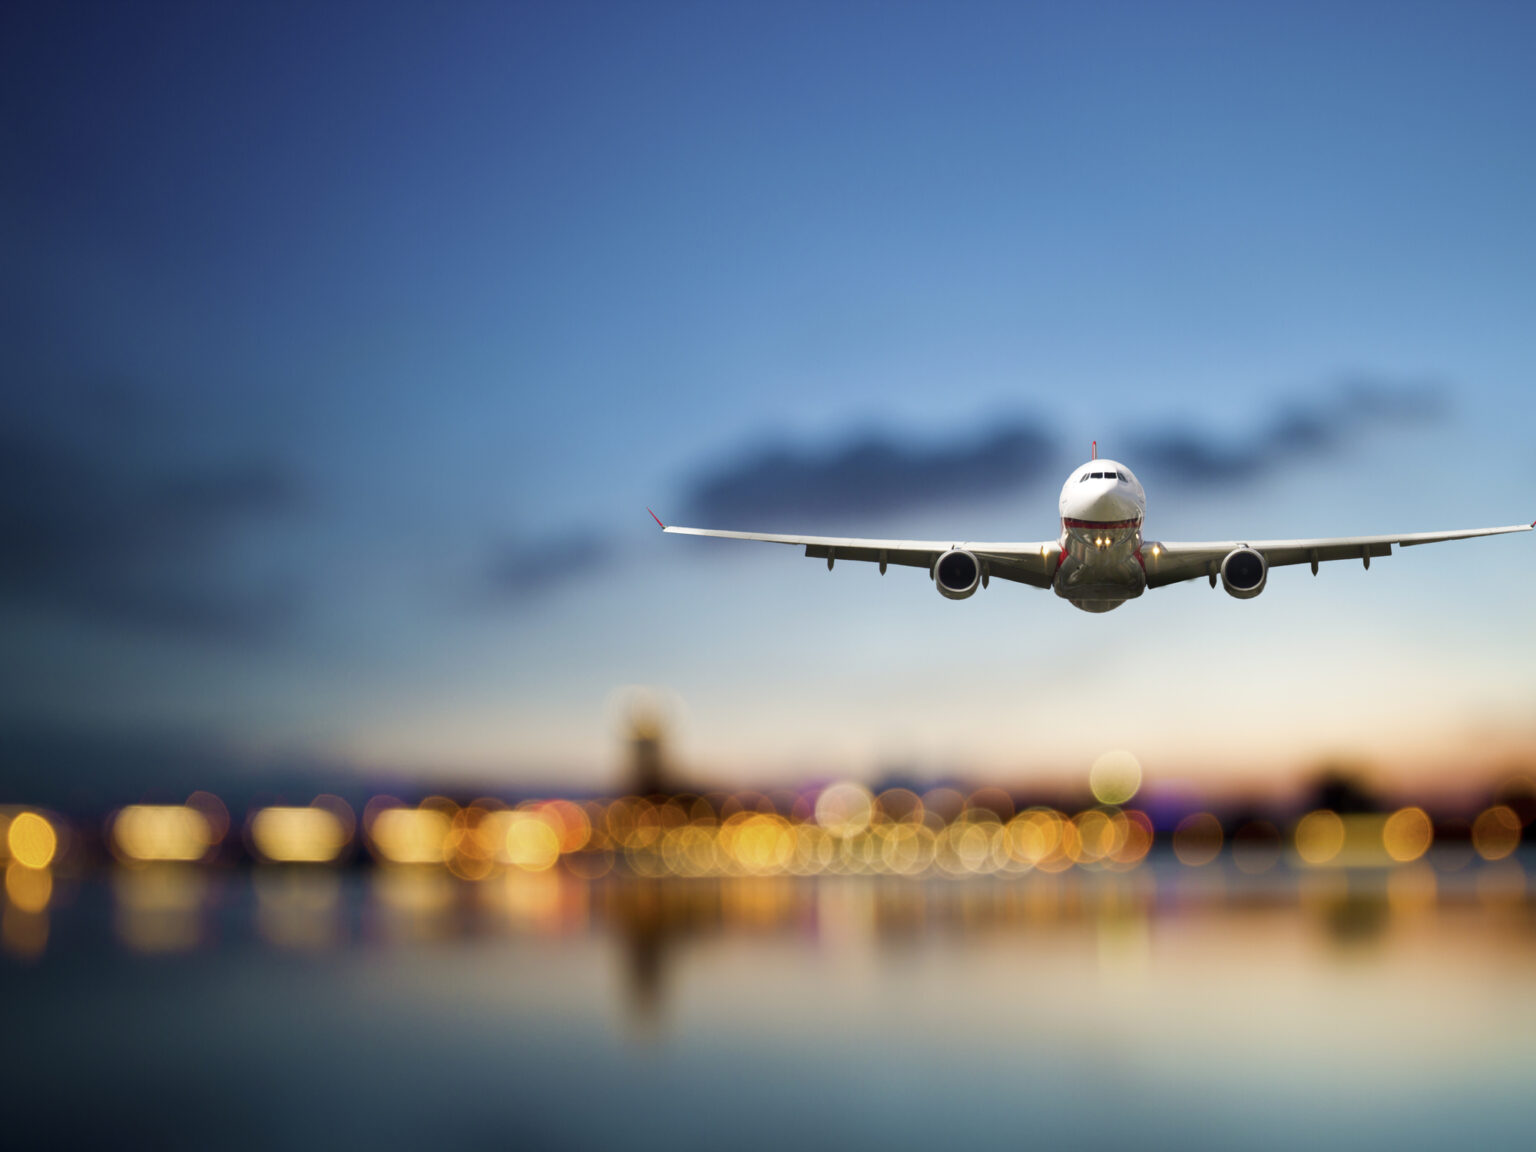 Airlines in India will bounce back to 80% pre-Covid capacity this year, predicts Morgan Stanley